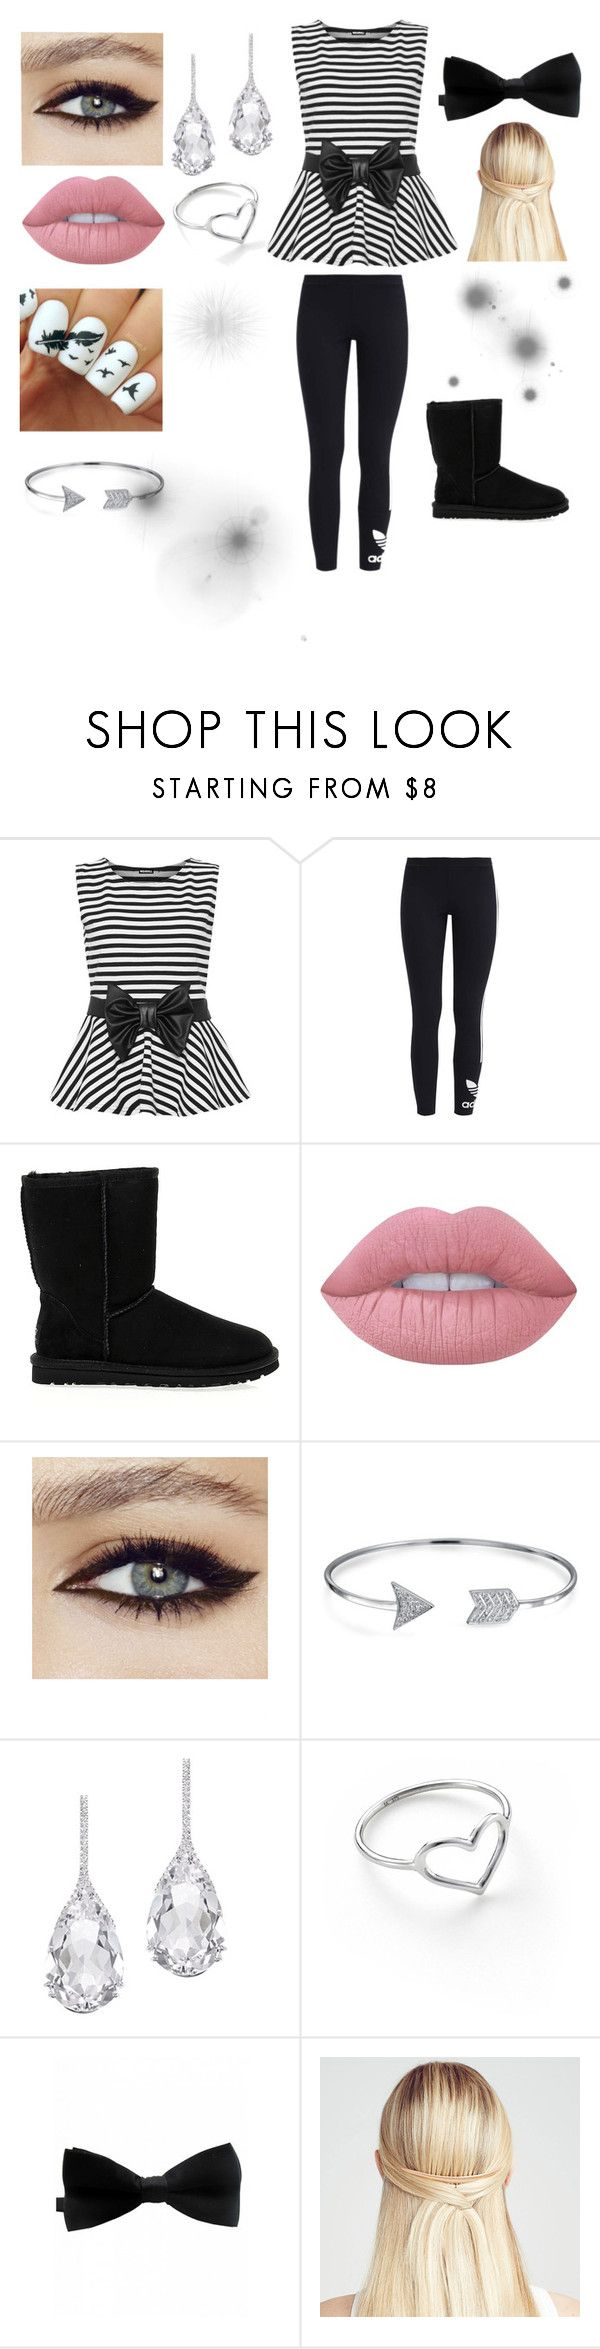 """""""Black and White Stripes"""" by furffle ❤ liked on Polyvore featuring WearAll, adidas Originals, UGG Australia, Lime Crime, Bling Jewelry, Plukka, Jordan Askill and Chloe + Isabel"""